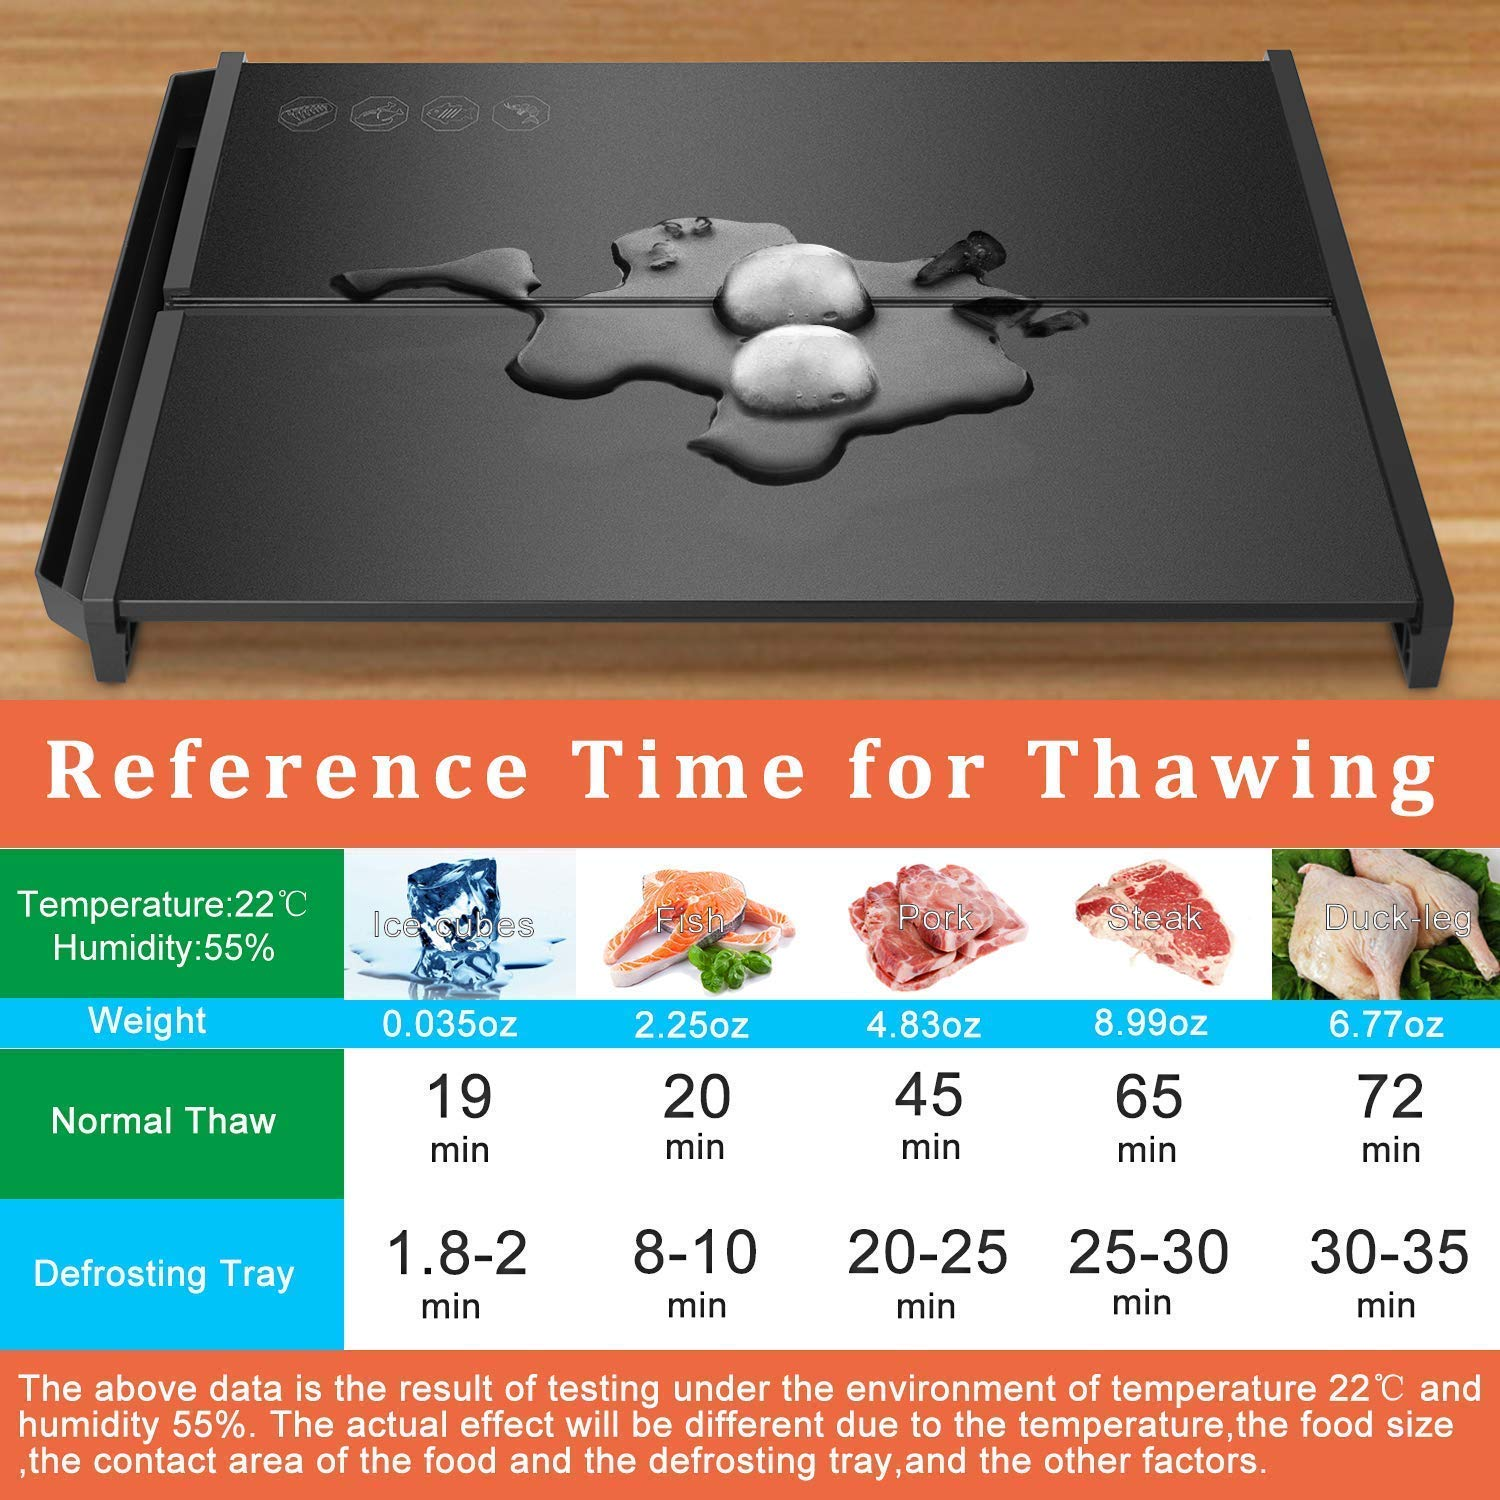 Defrosting Tray, Rapid Thawing Plate Thickness 0.24'', Stable Framework, Defrost Frozen Food Like Meat, Chicken, Fish Quickly, No Additional Heat Source Required by TMKEFFC (Image #4)